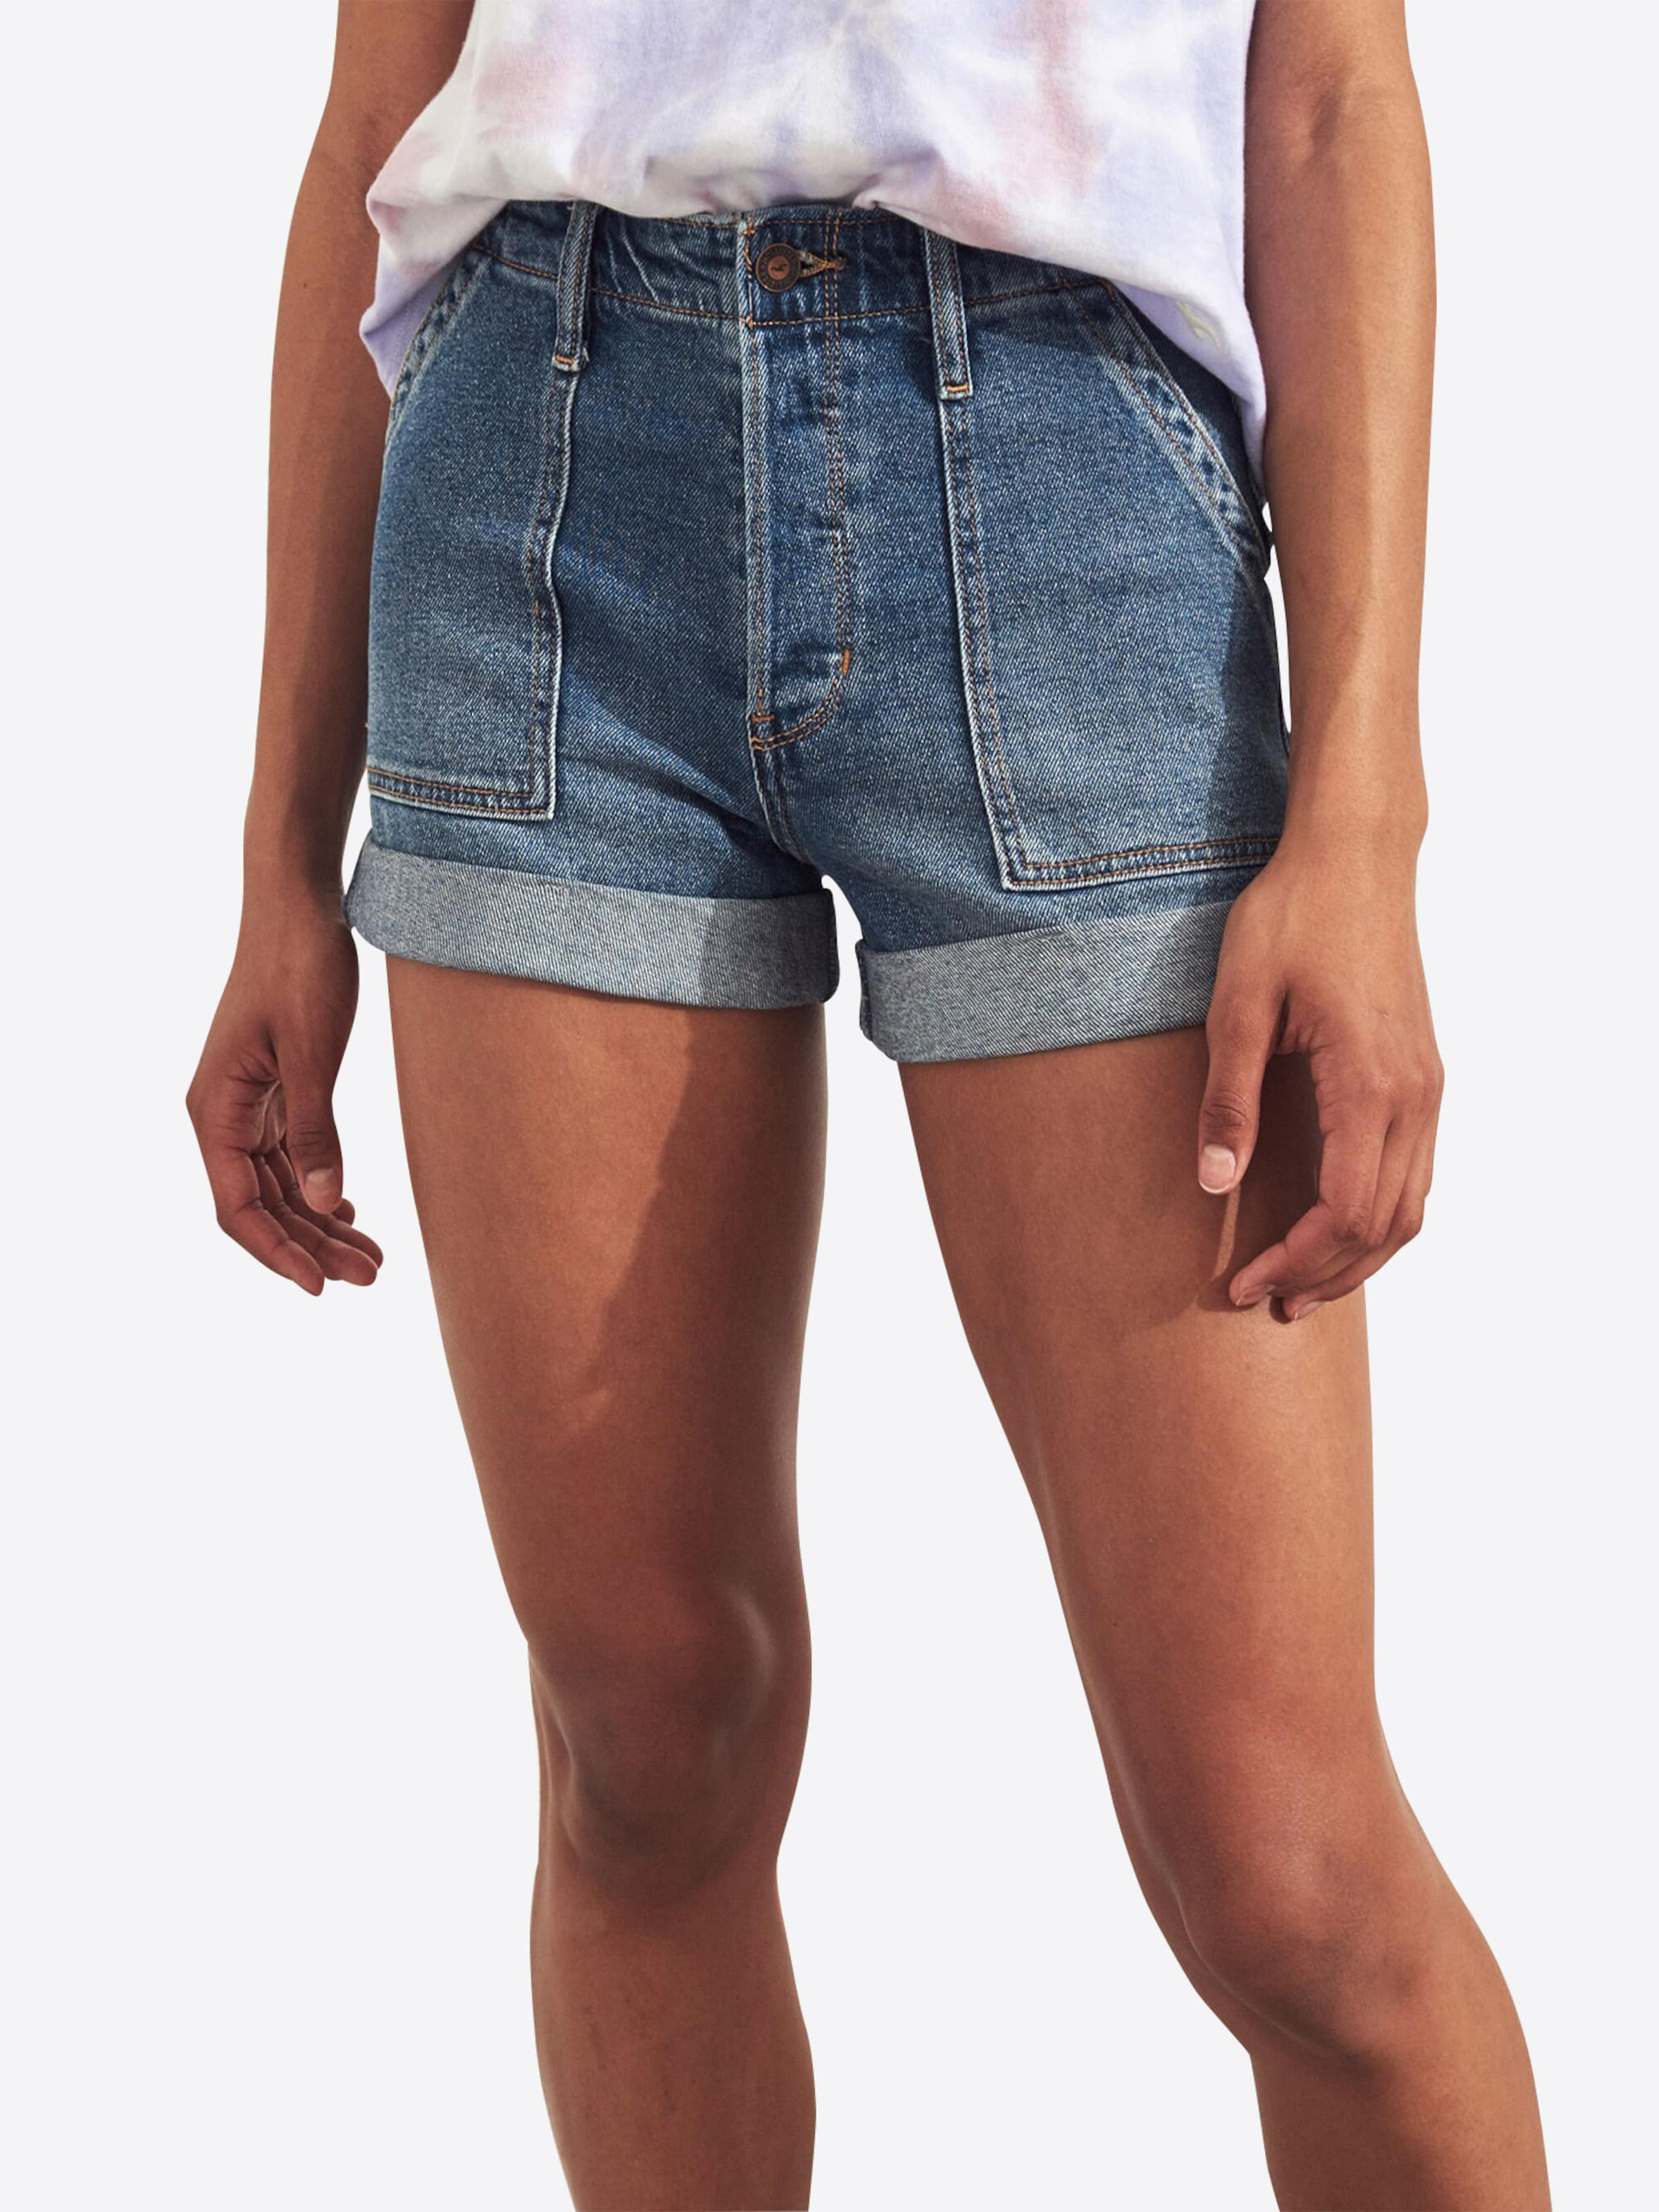 carpenter 's119 Hollister Jeans Hr Blue Short' In Pkt Denim Mom iXZPuOk